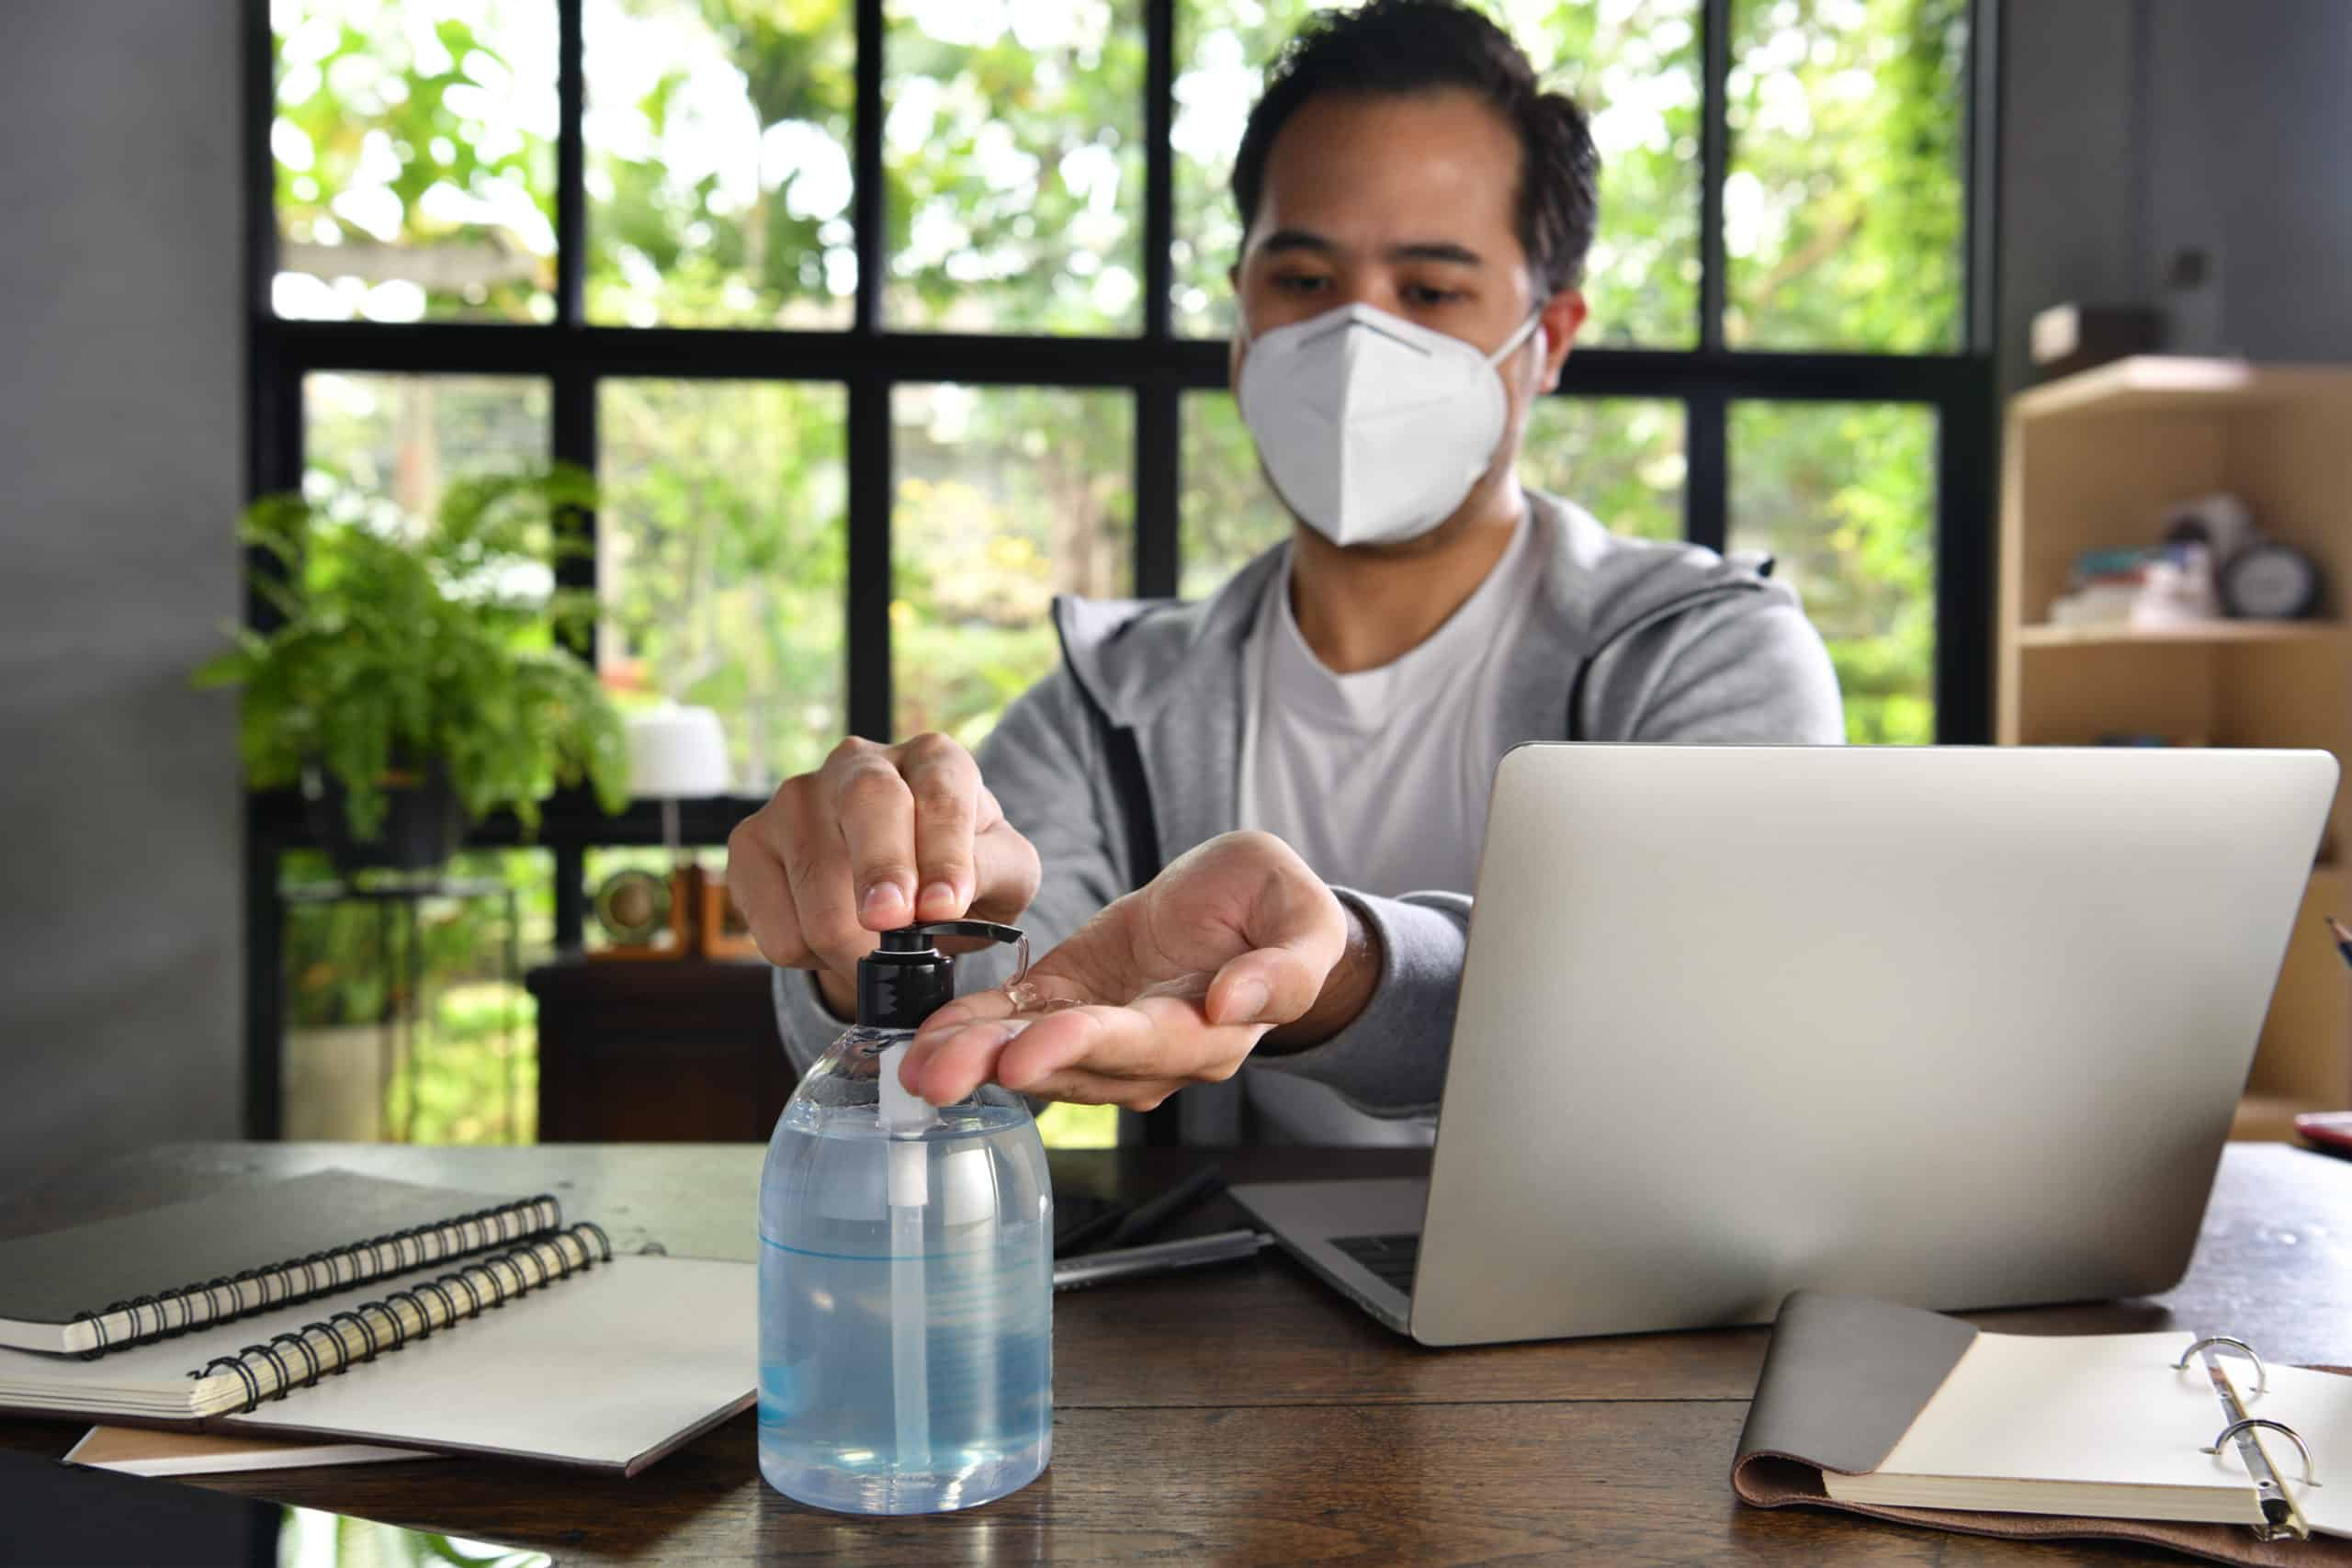 Asian man in quarantine and social distancing wearing surgical mask and cleaning hands with alcohol gel sanitizer while working from home during Covid-19 Coronavirus pandemic